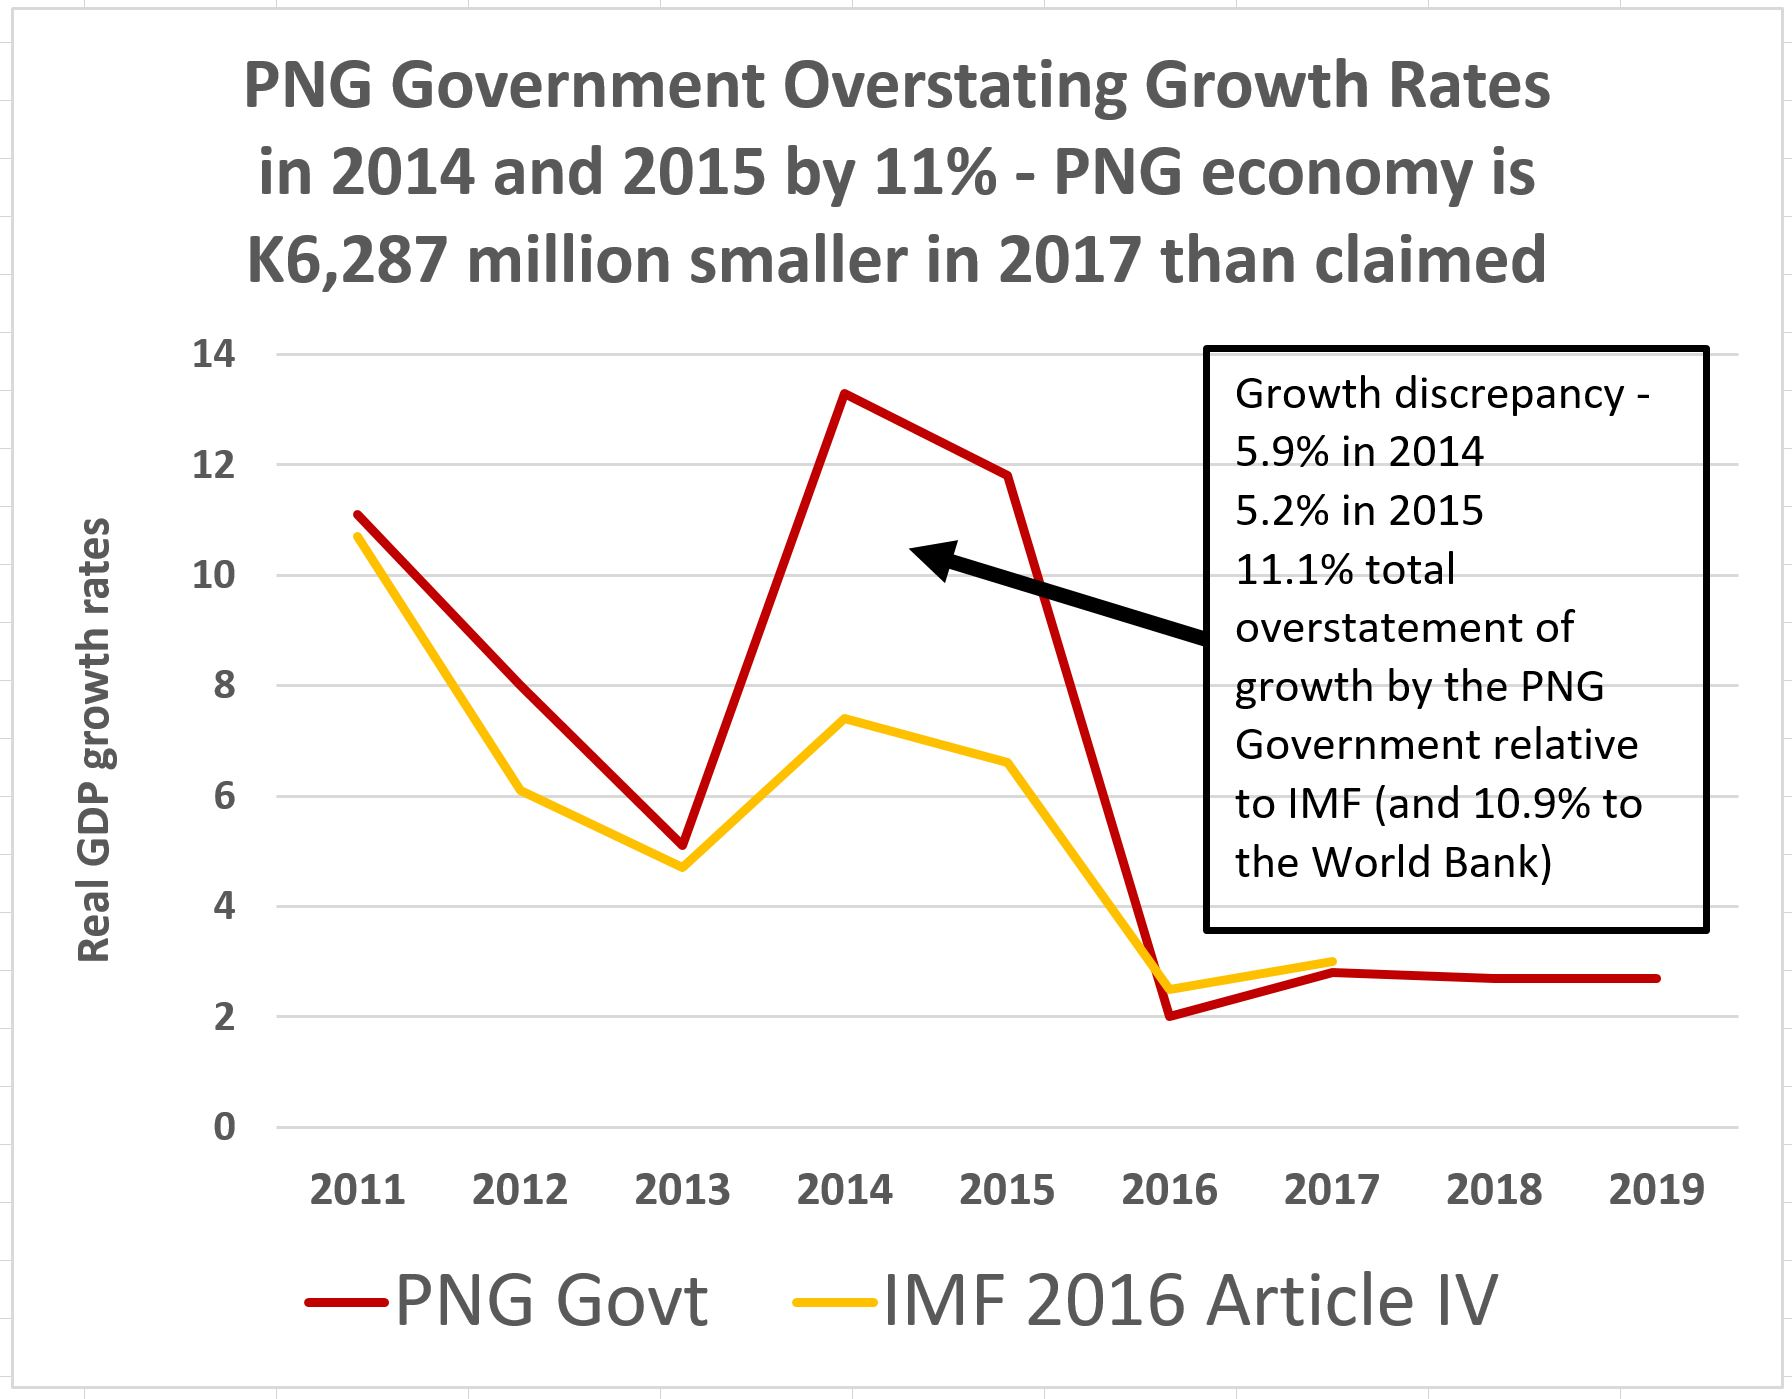 hight resolution of imf article iv 2016 growth differences